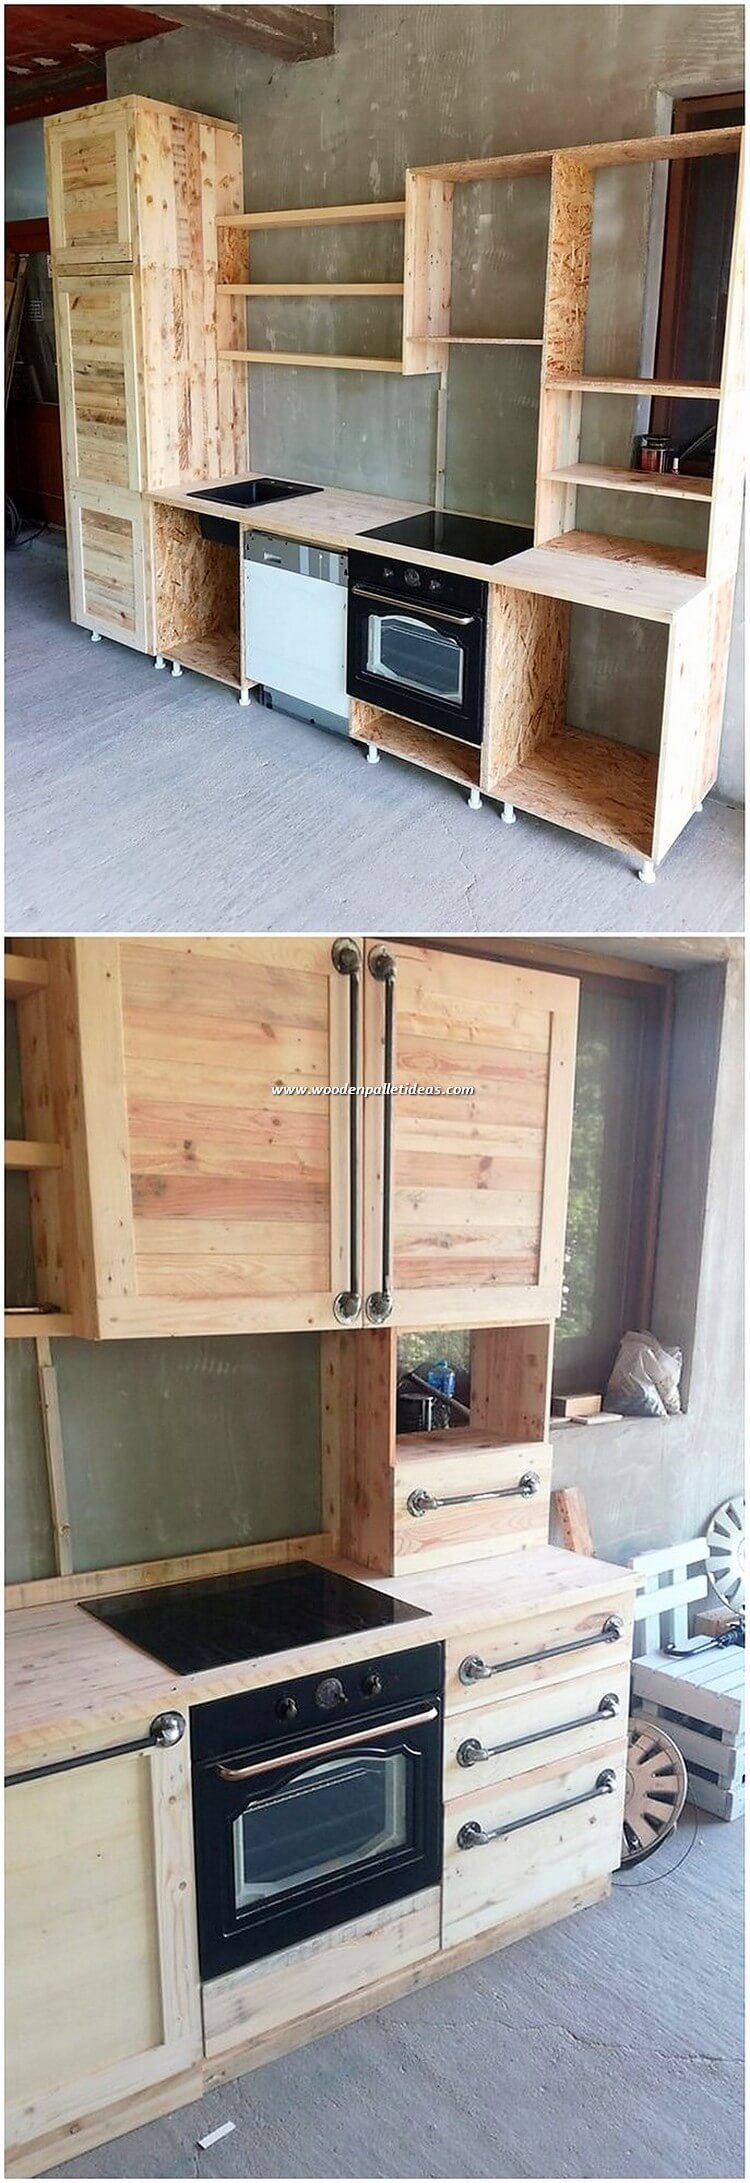 Pallet Kitchen Cabinets